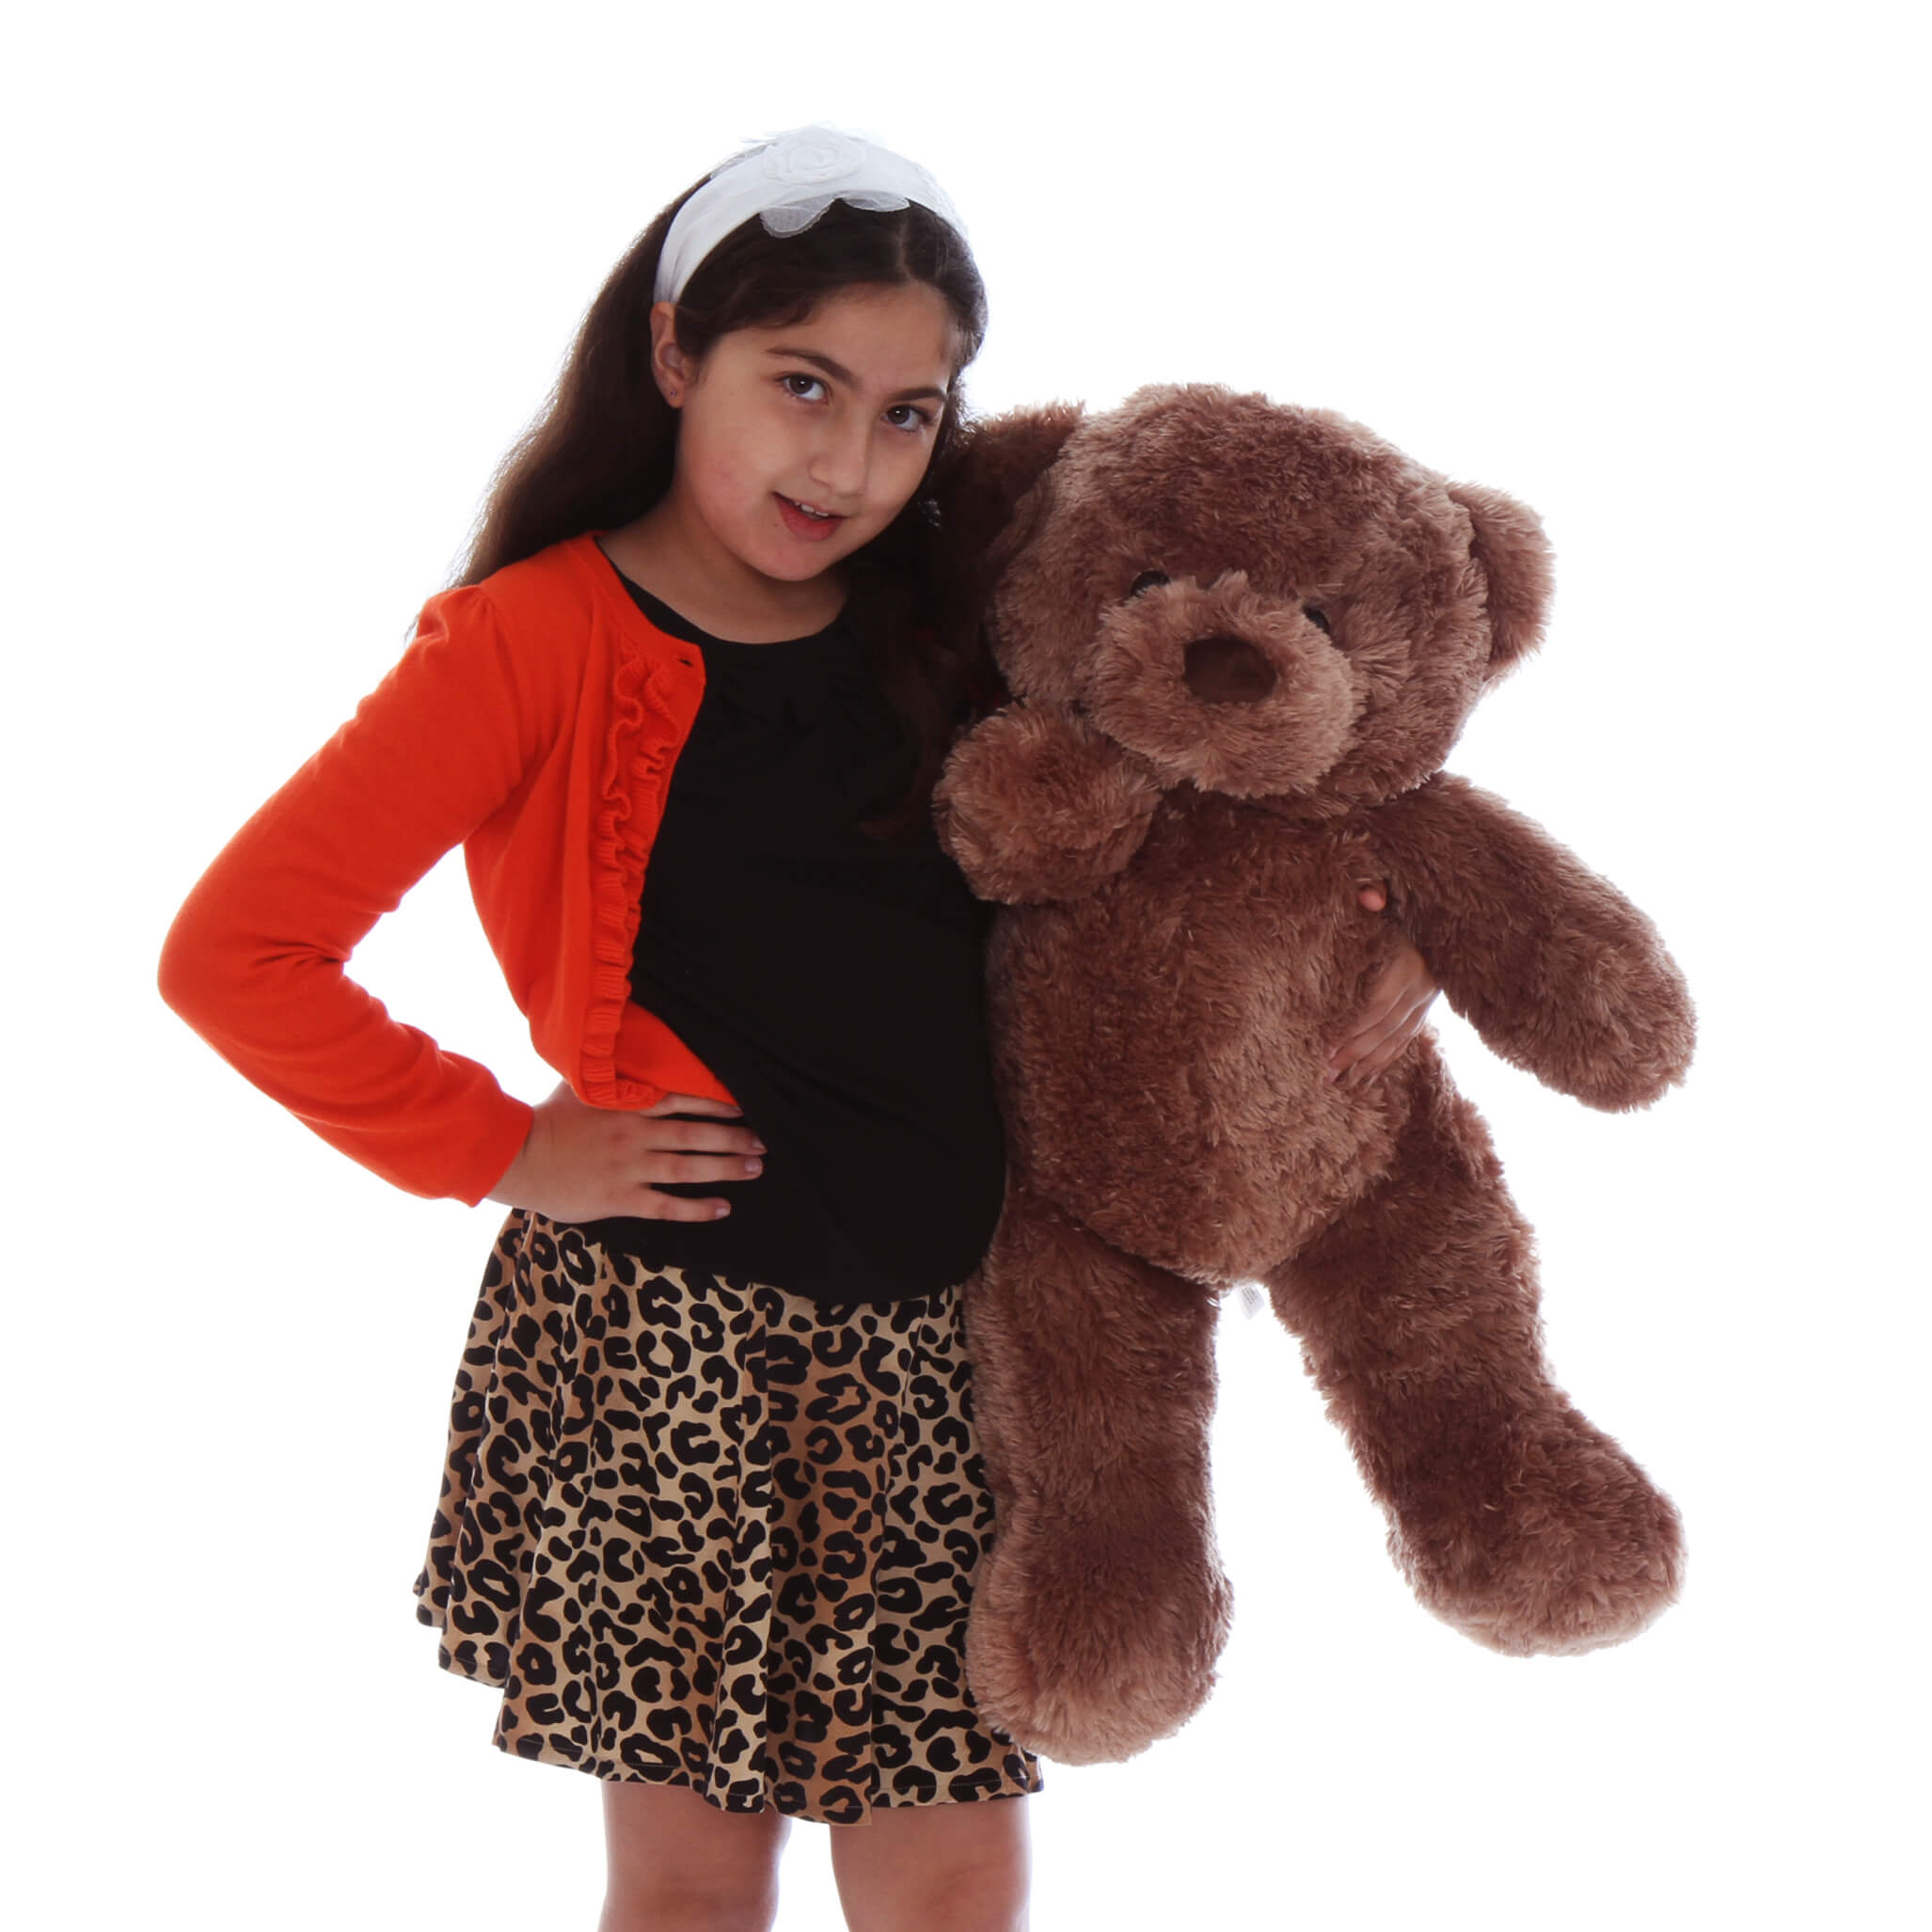 enormously-big-2-ft-huggable-and-soft-teddy-bear-mocha-brown-big-chubs-1.jpg